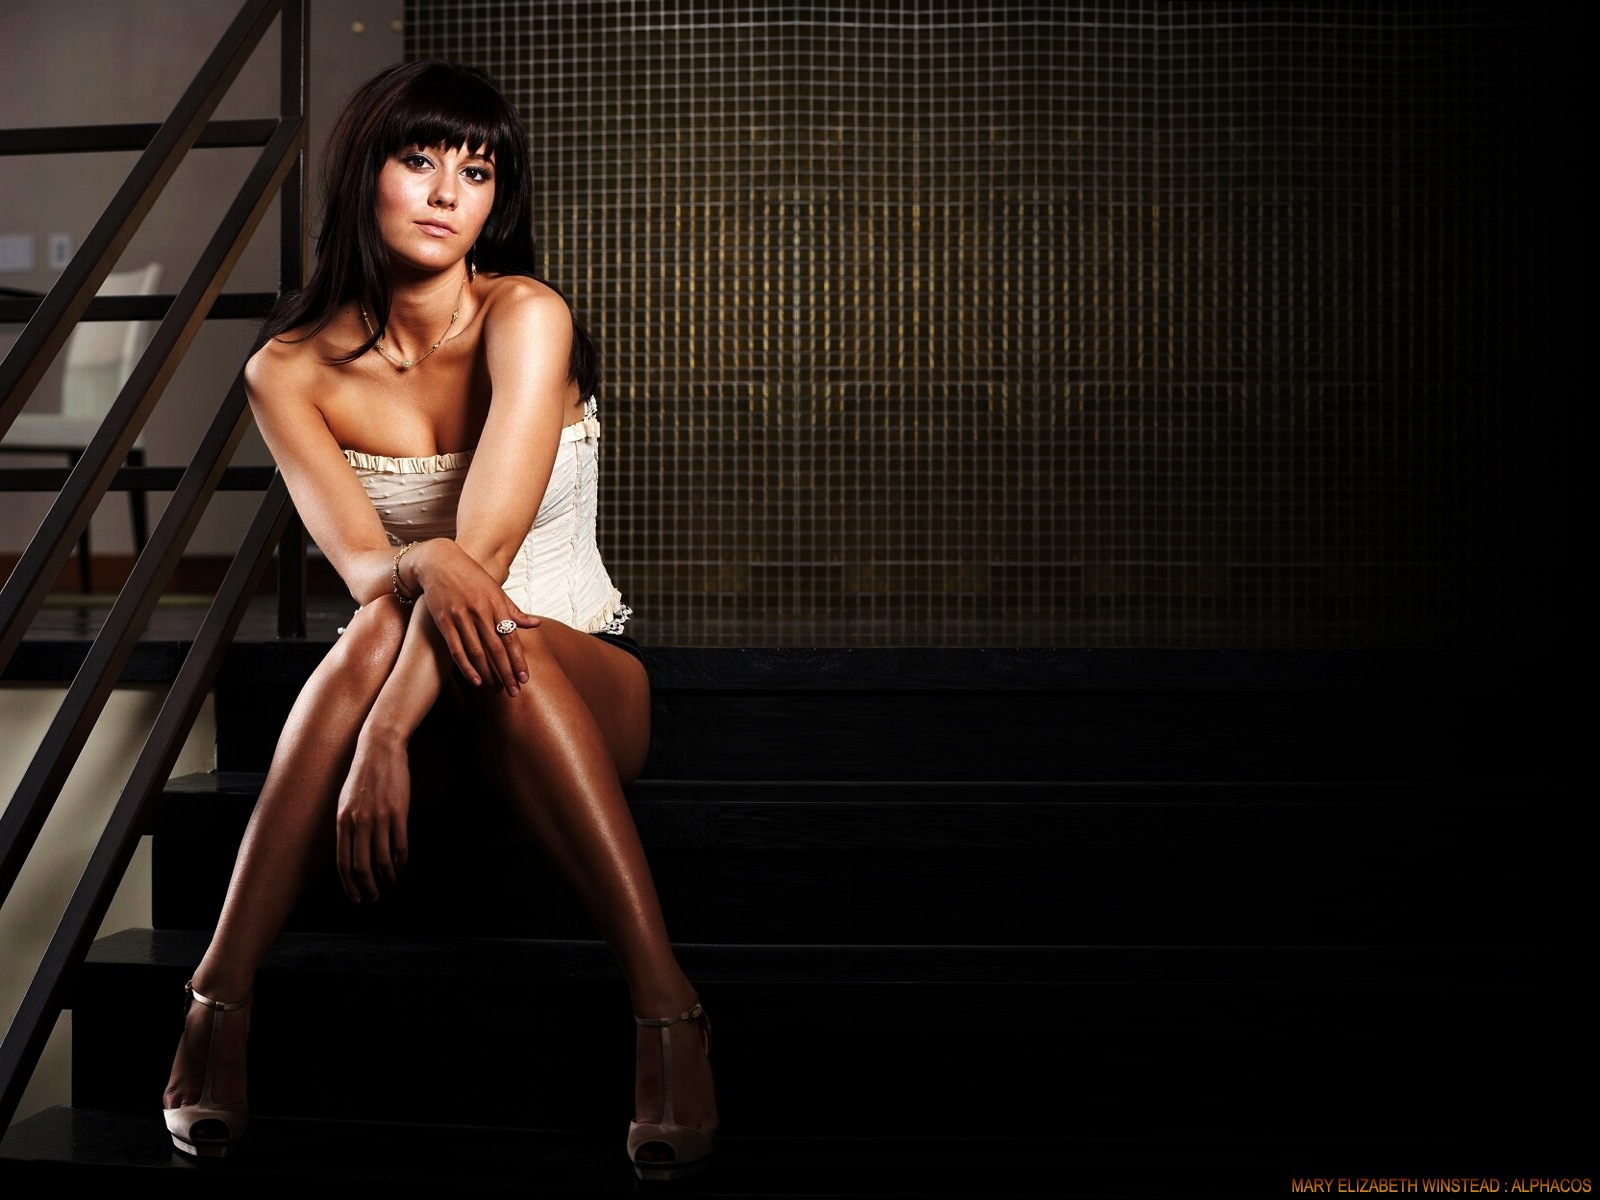 http://4.bp.blogspot.com/-OW8HmHvVyPQ/TtYjCVSeR-I/AAAAAAAABGA/_iPlJ9ob7Ps/s1600/Mary-Elizabeth-Winstead-Hot-hd+Wallpapers.jpg